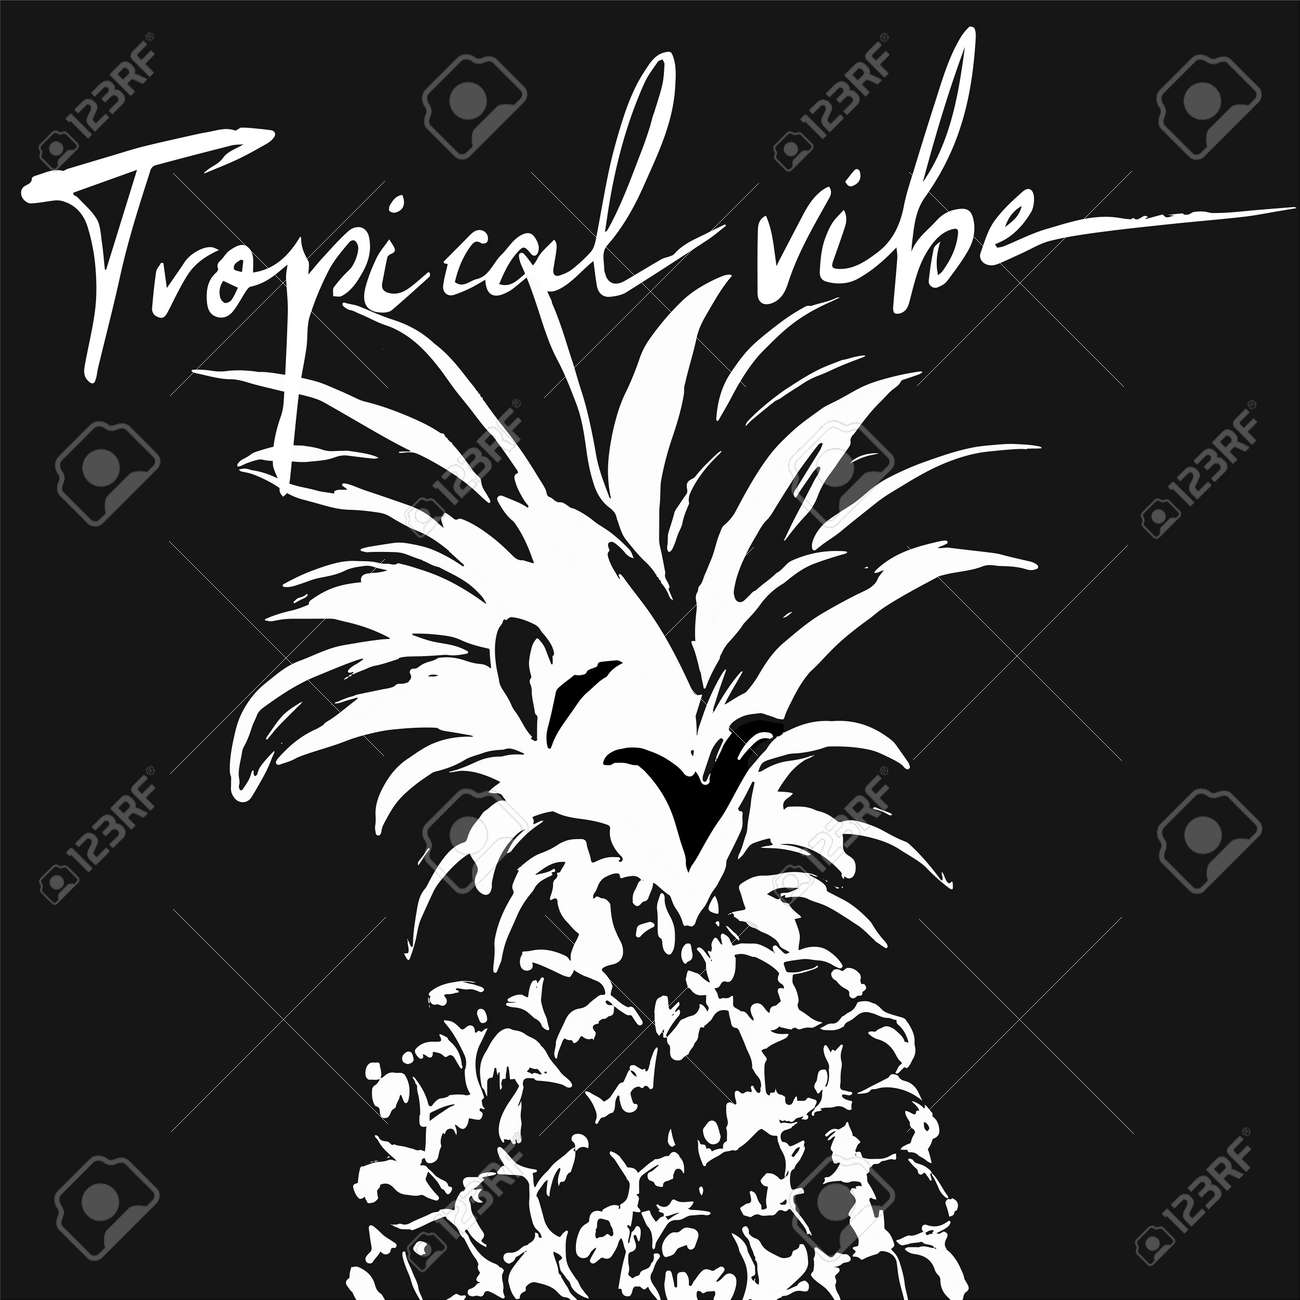 Vector illustration of white graphic pineapple with text on black background. Perfect for poster, print on t shirt for men, weman, kids. Invintation or banner design in tropical style. - 154725359